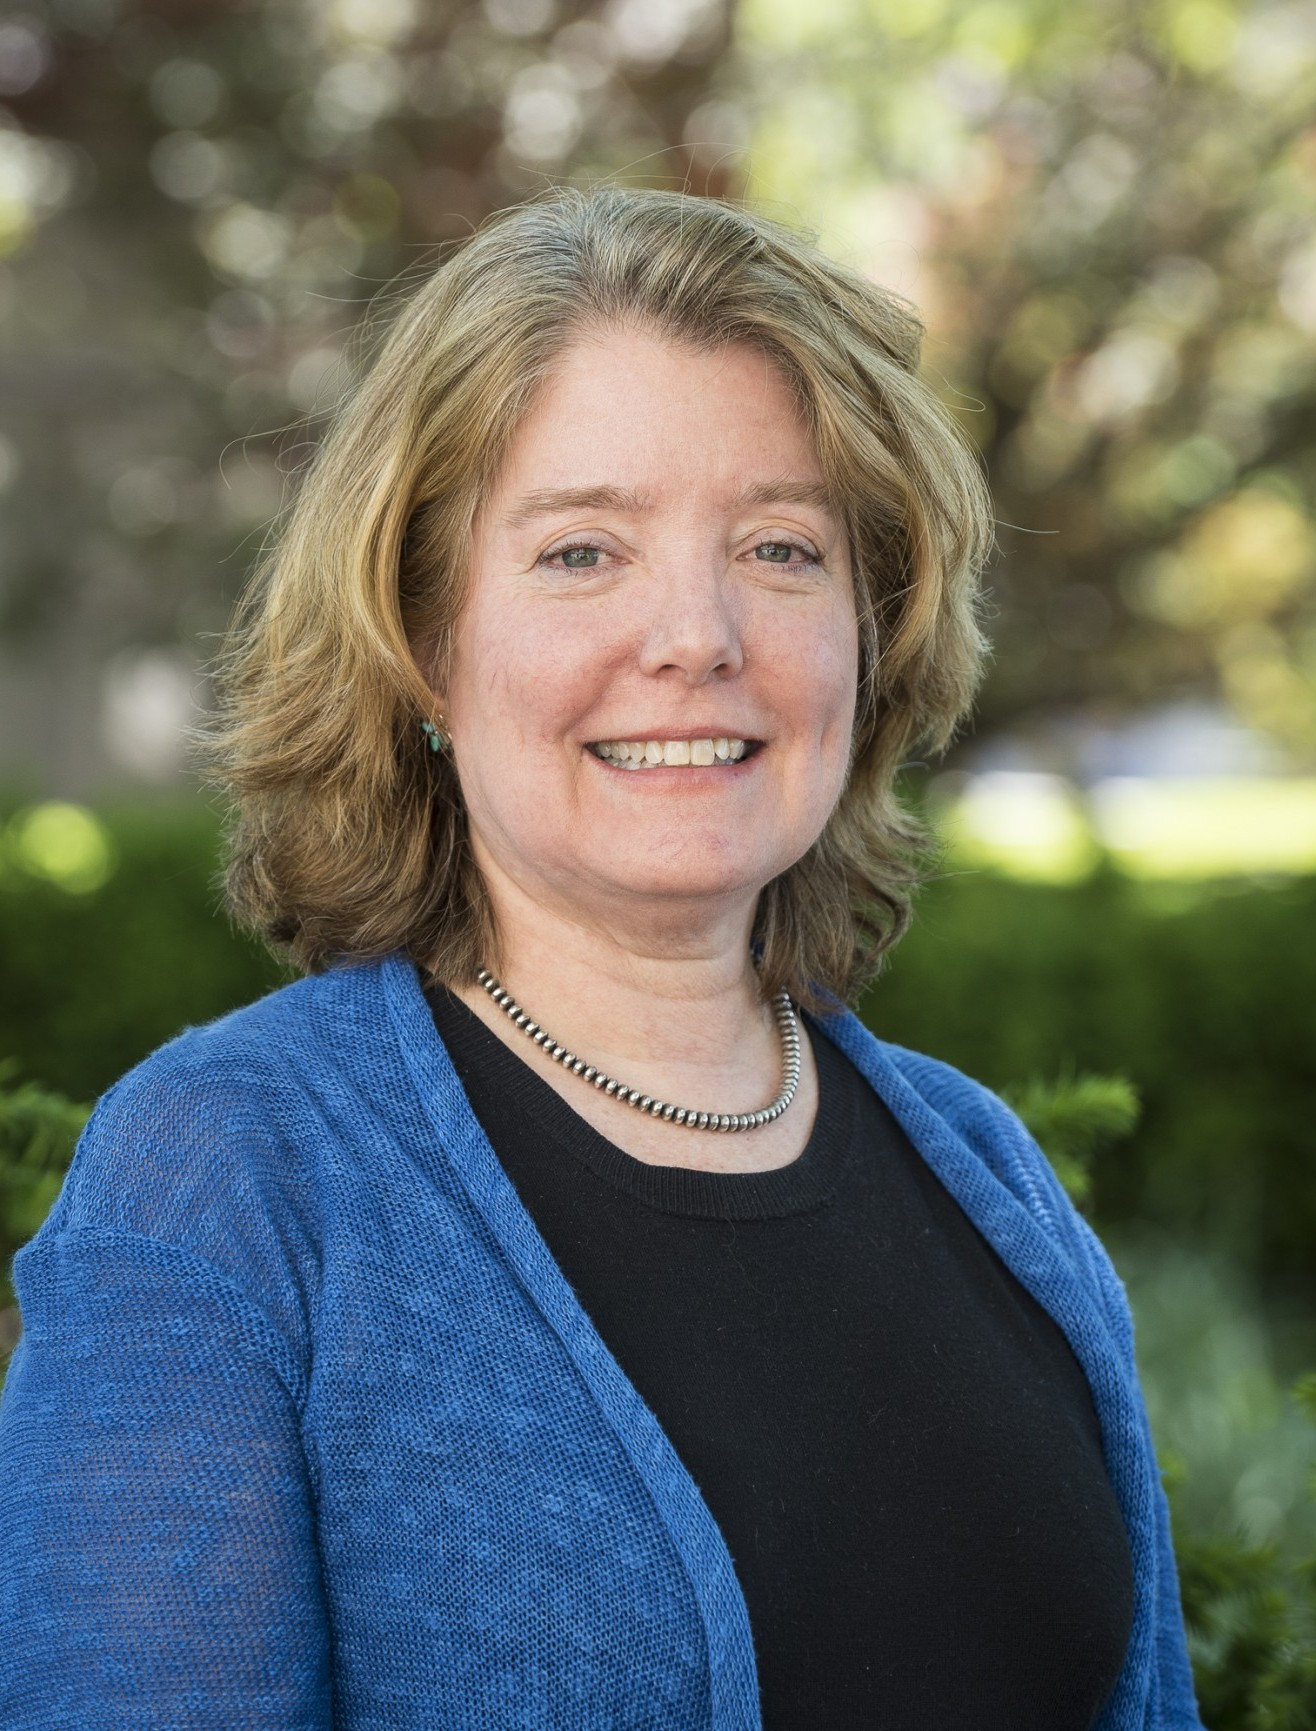 Susan V. Smith, Associate Provost for Academic Programs